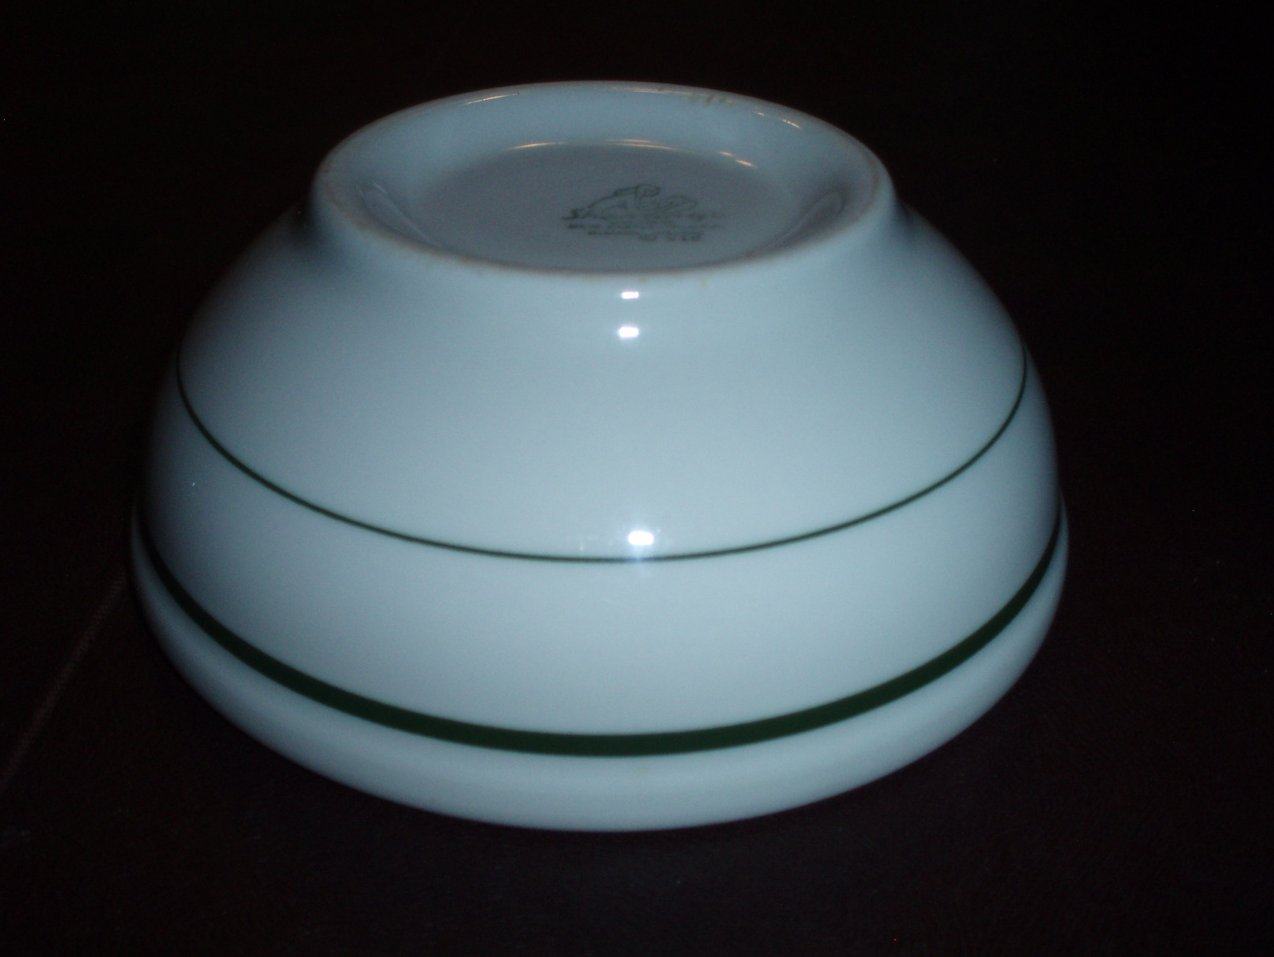 Image 2 of Shenango China cereal bowl Lawrence V16 restaurant ware